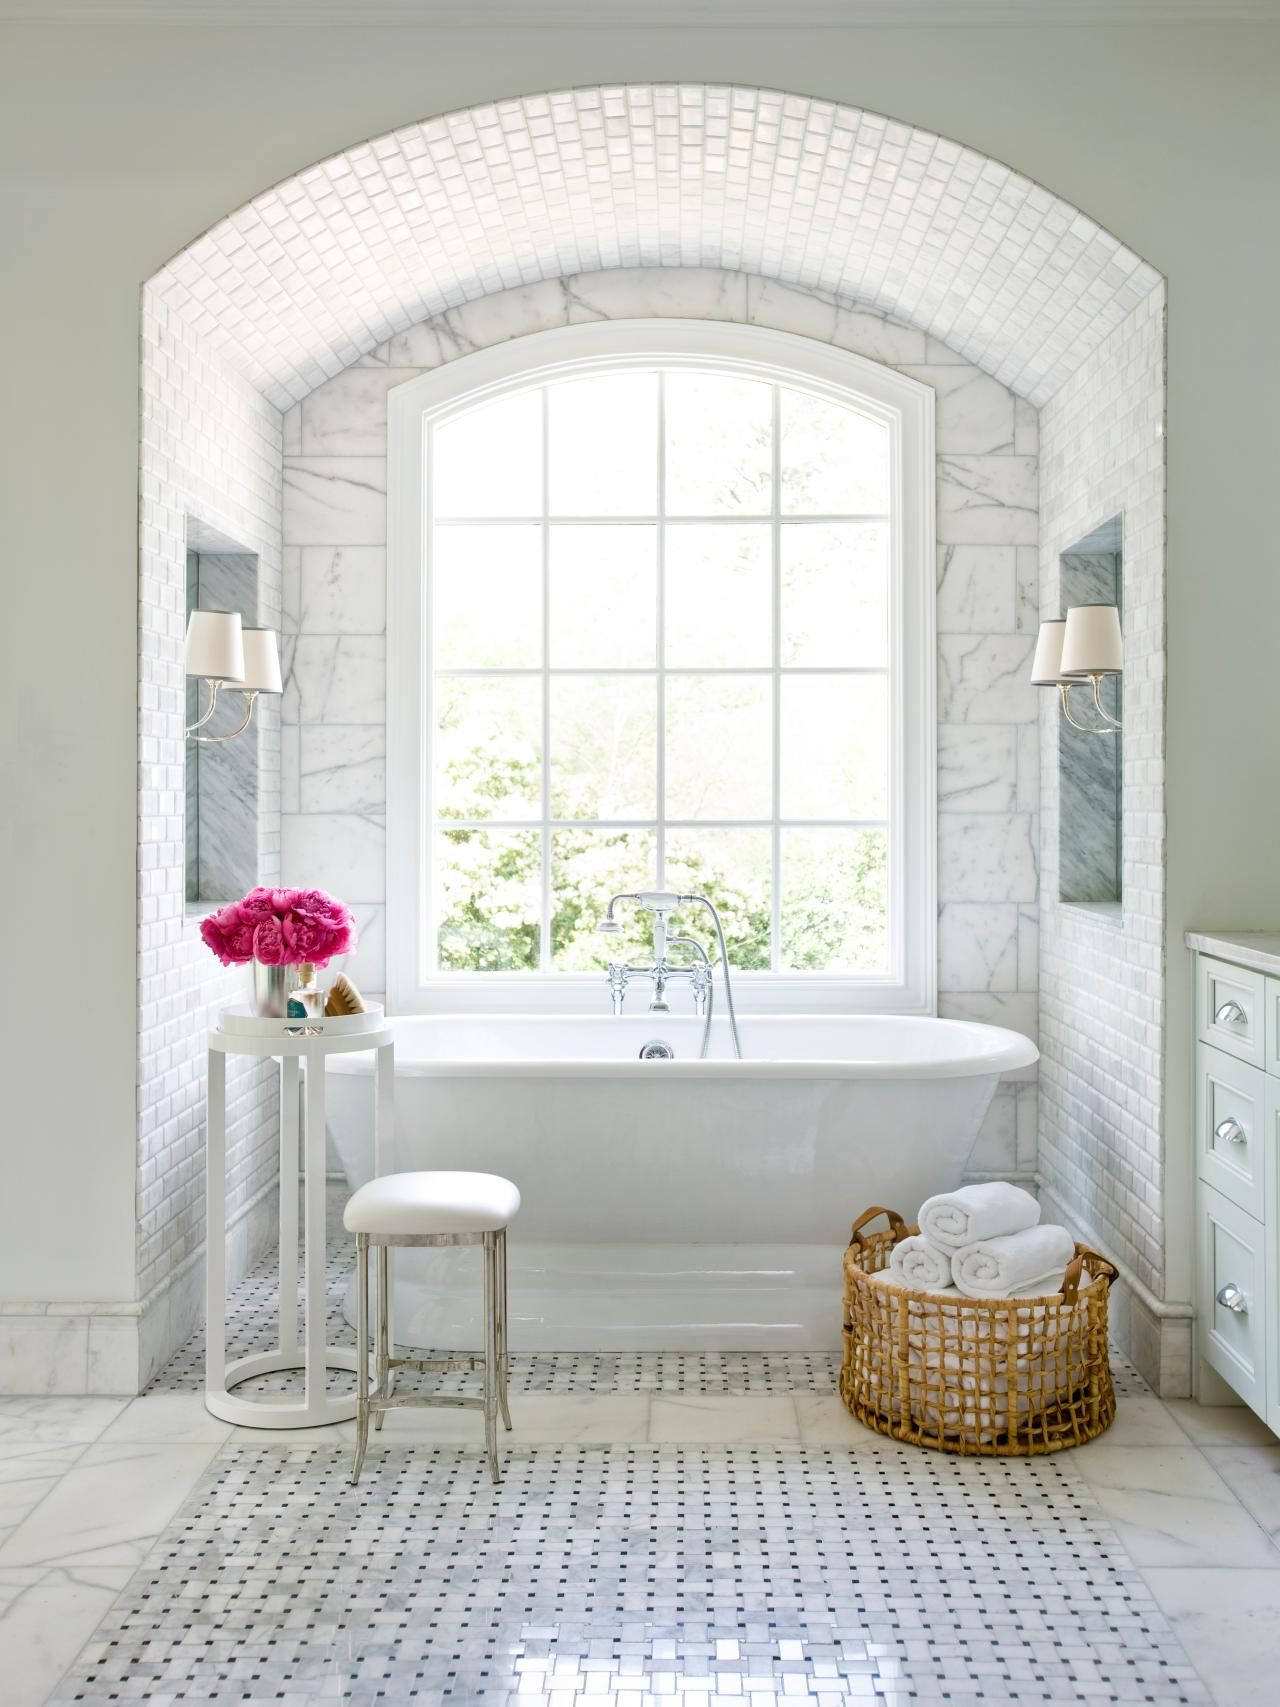 15 Simply Chic Bathroom Tile Design Ideas | Bathroom Design ...